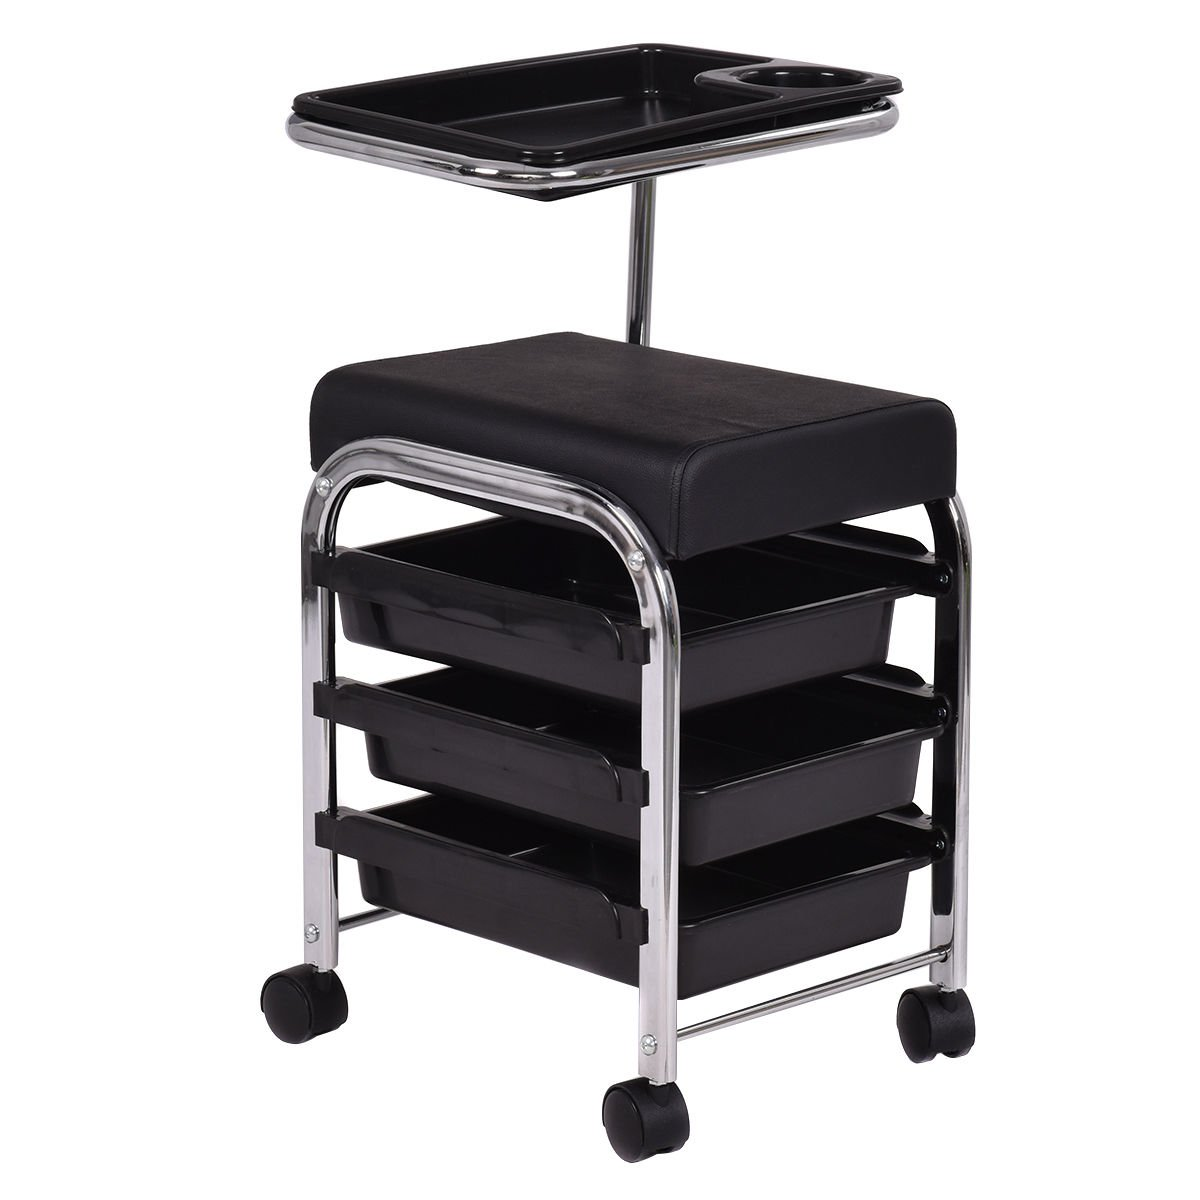 Giantex Black Pedicure Manicure Nail Cart Trolley Stool Chair Salon SPA With Shelves  sc 1 st  Amazon.com & Amazon.com : Salon Nail Pedicure Stool Pedicure Chair DAYTON BLACK ... islam-shia.org